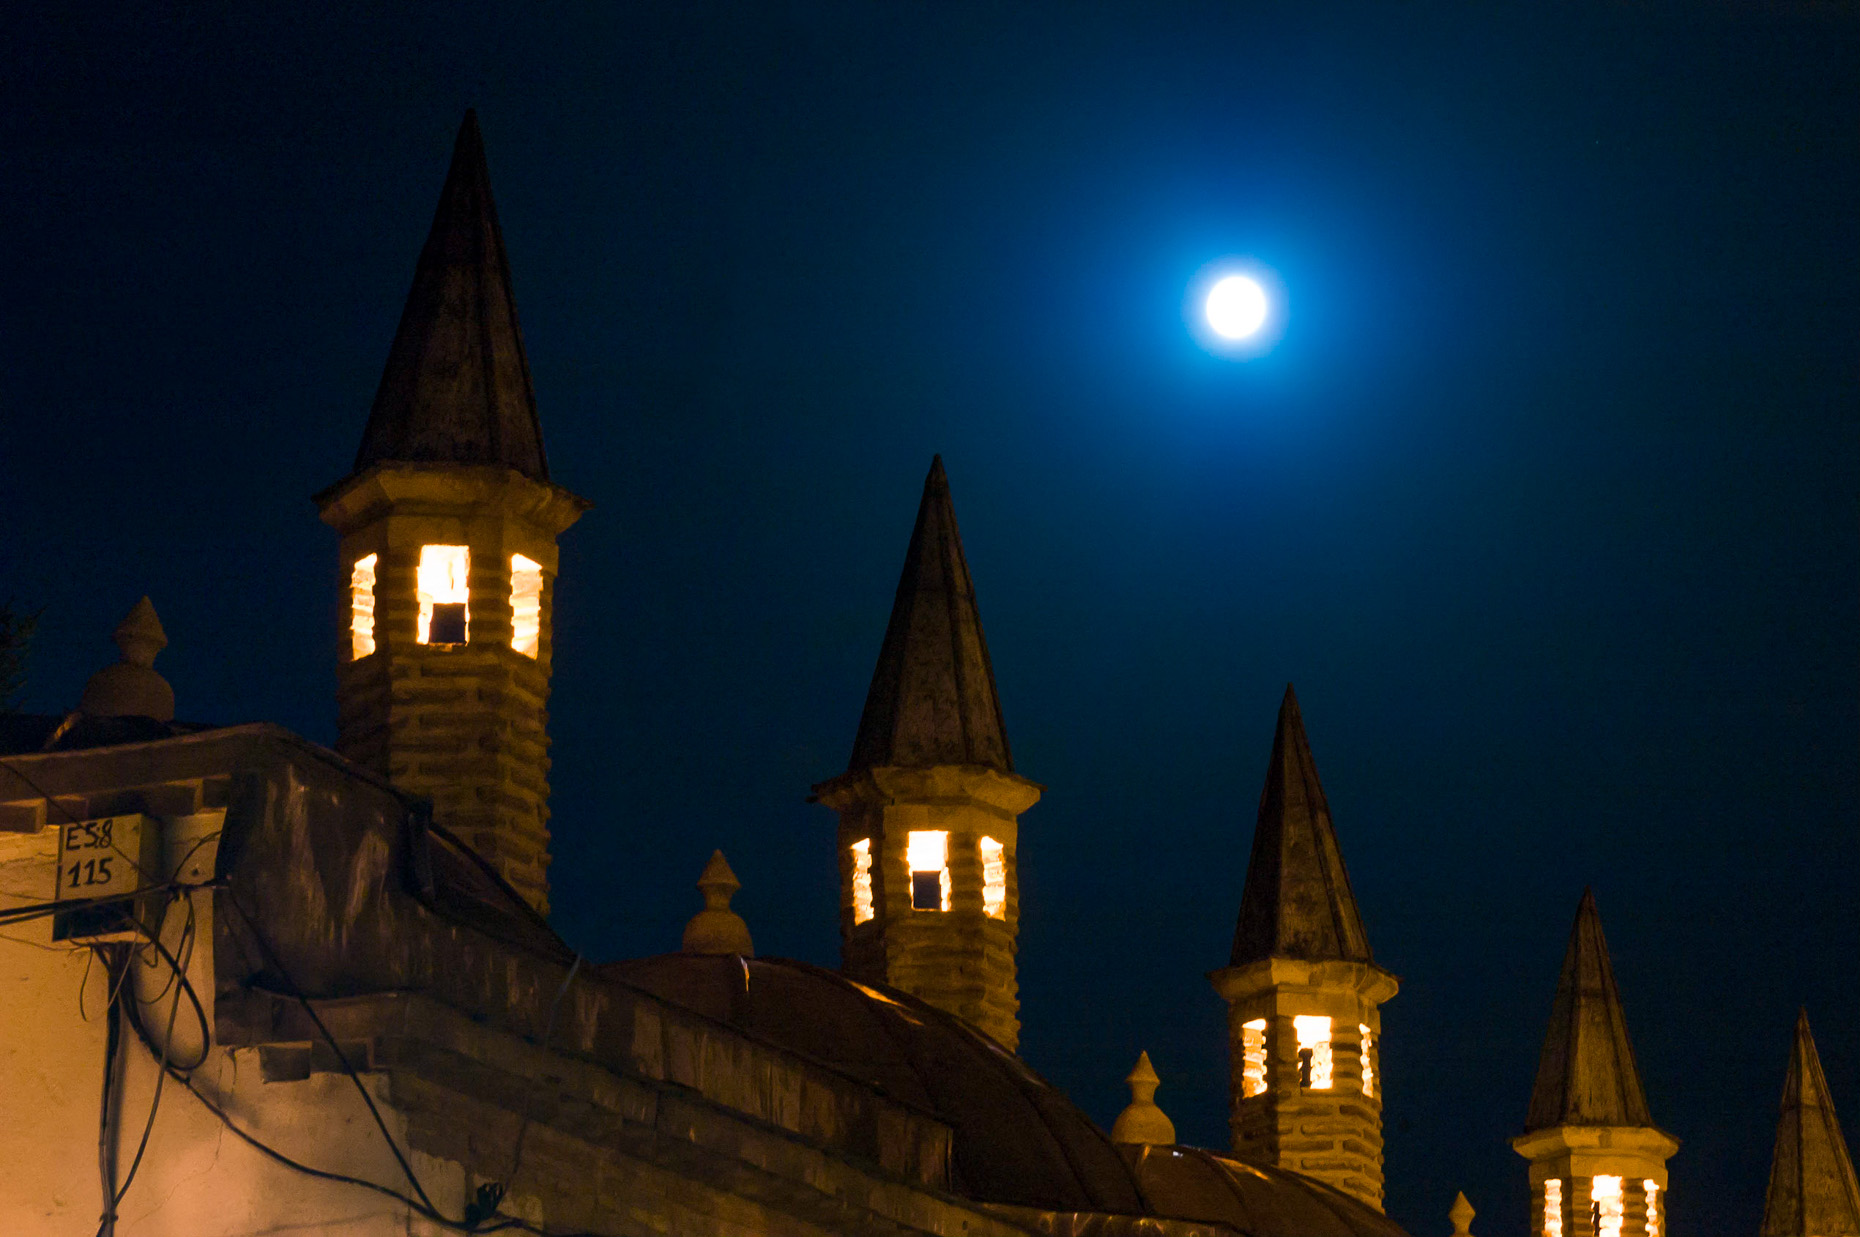 Image of spires of Mevlana Sufi Mosque at night with full moon, Konya, Turkey.